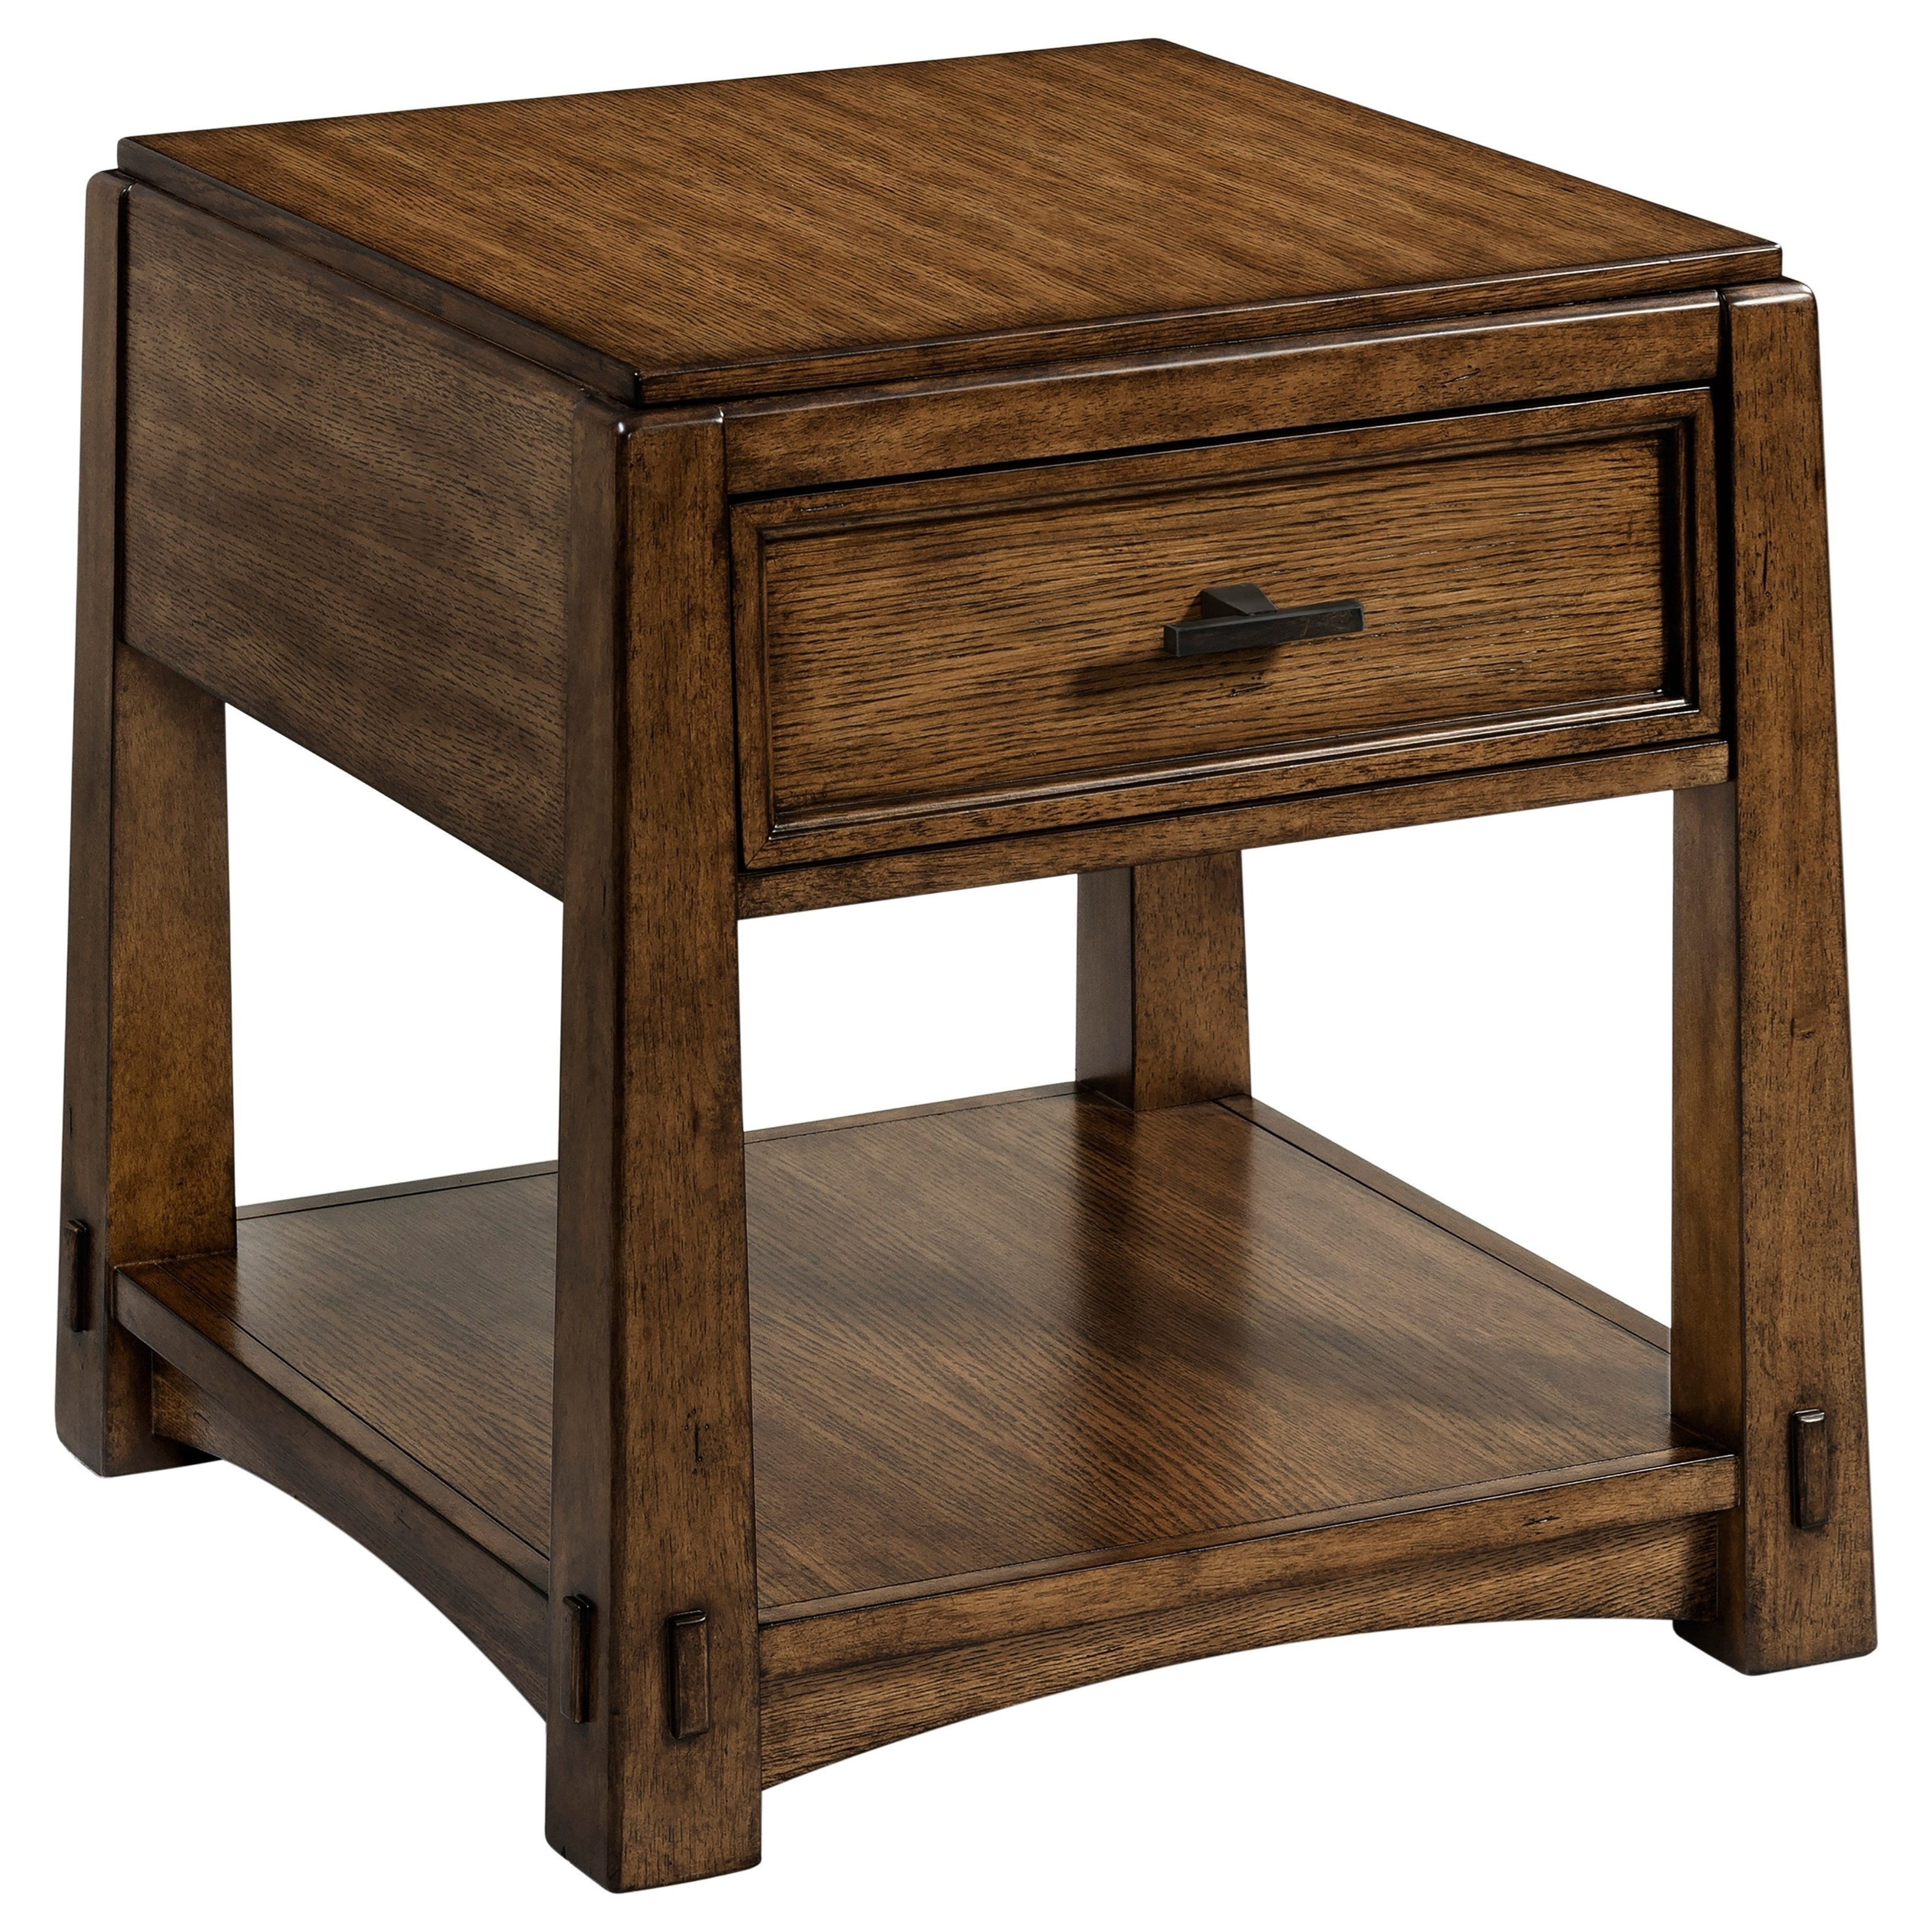 Broyhill Furniture Winslow Park End Table   Item Number: 4604 002